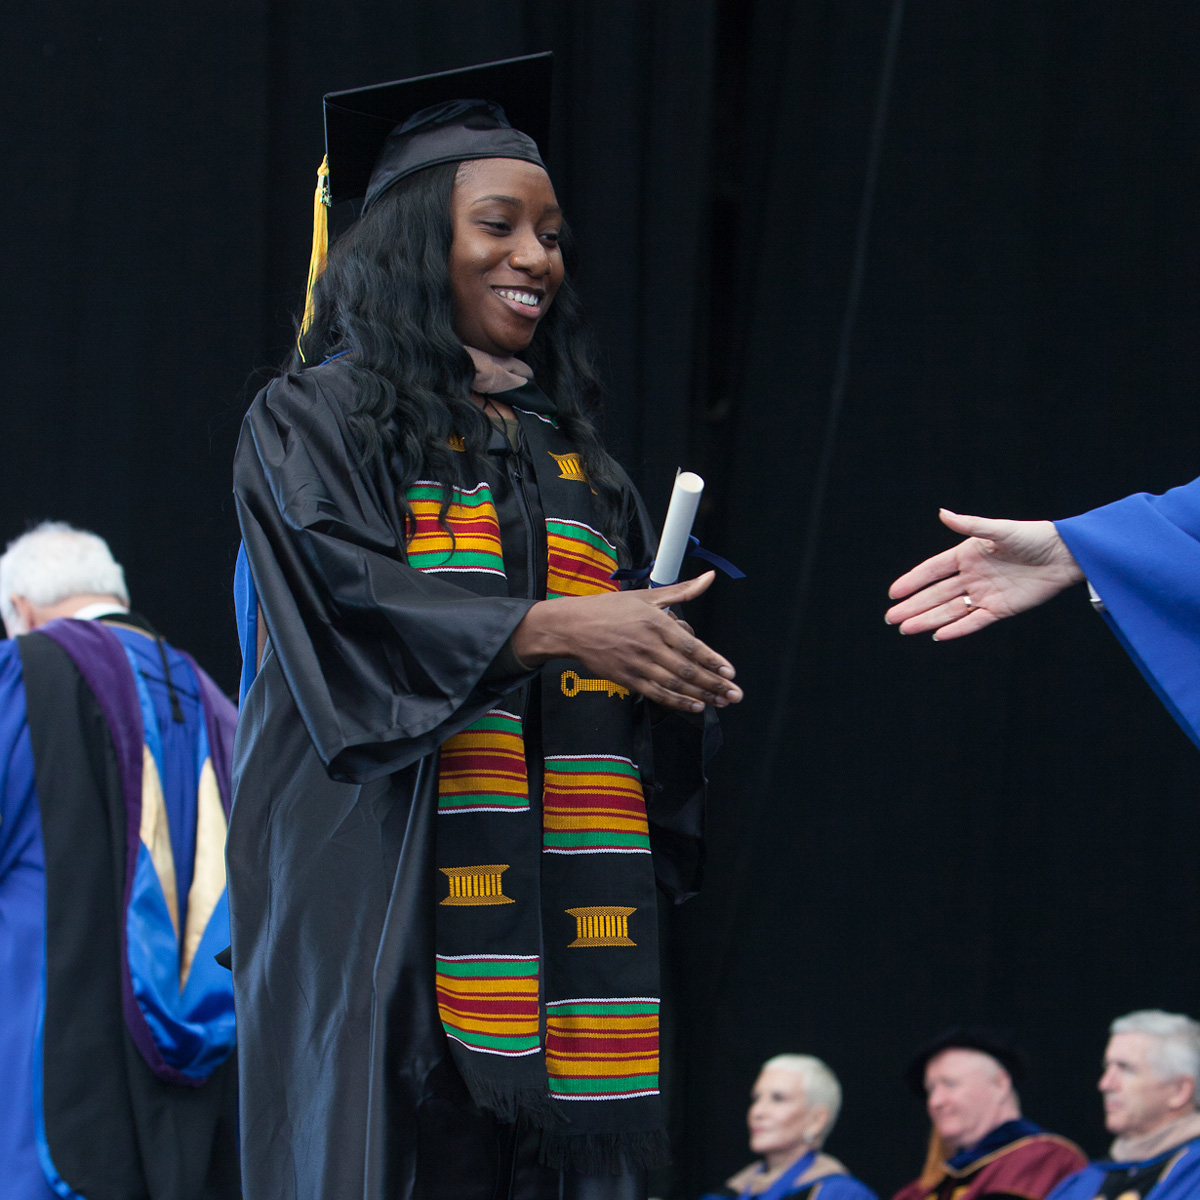 Brittani Cesar preparing to shake an administrator's hand while crossing the stage at Commencement.